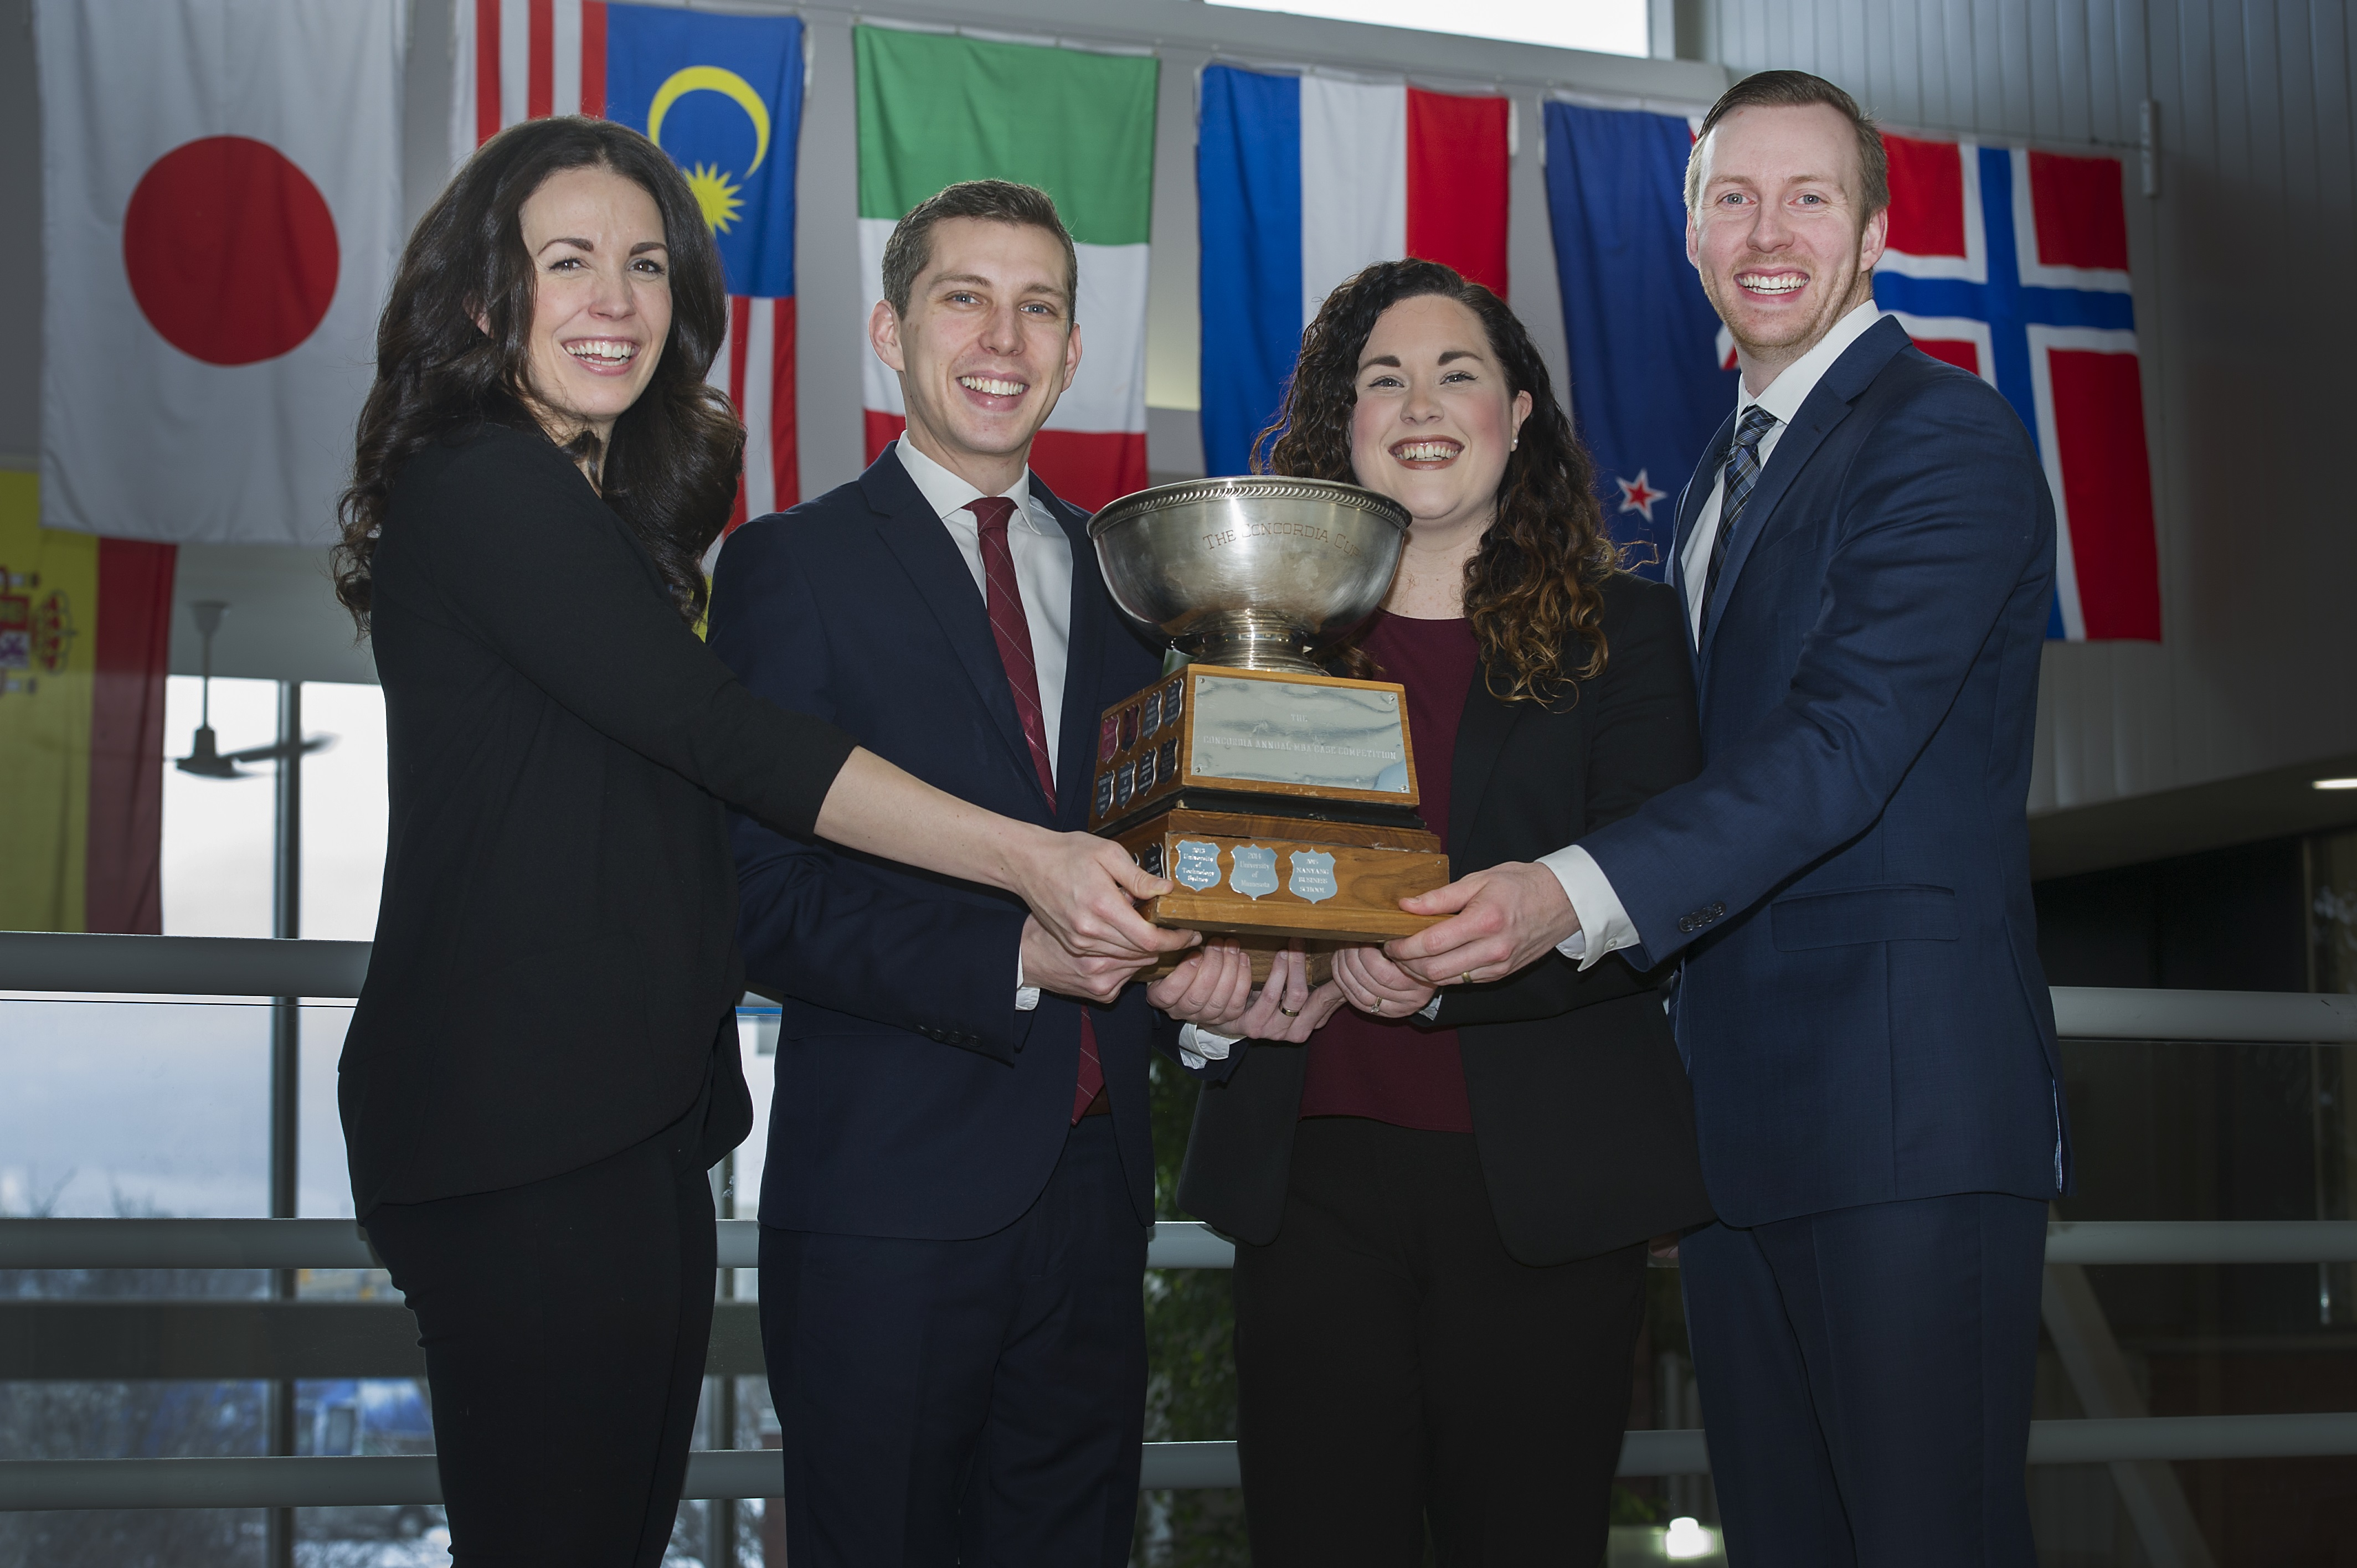 From left are Kate Boland, Nick Lane, Stephanie Daley and Greg Piercey in the Business building.